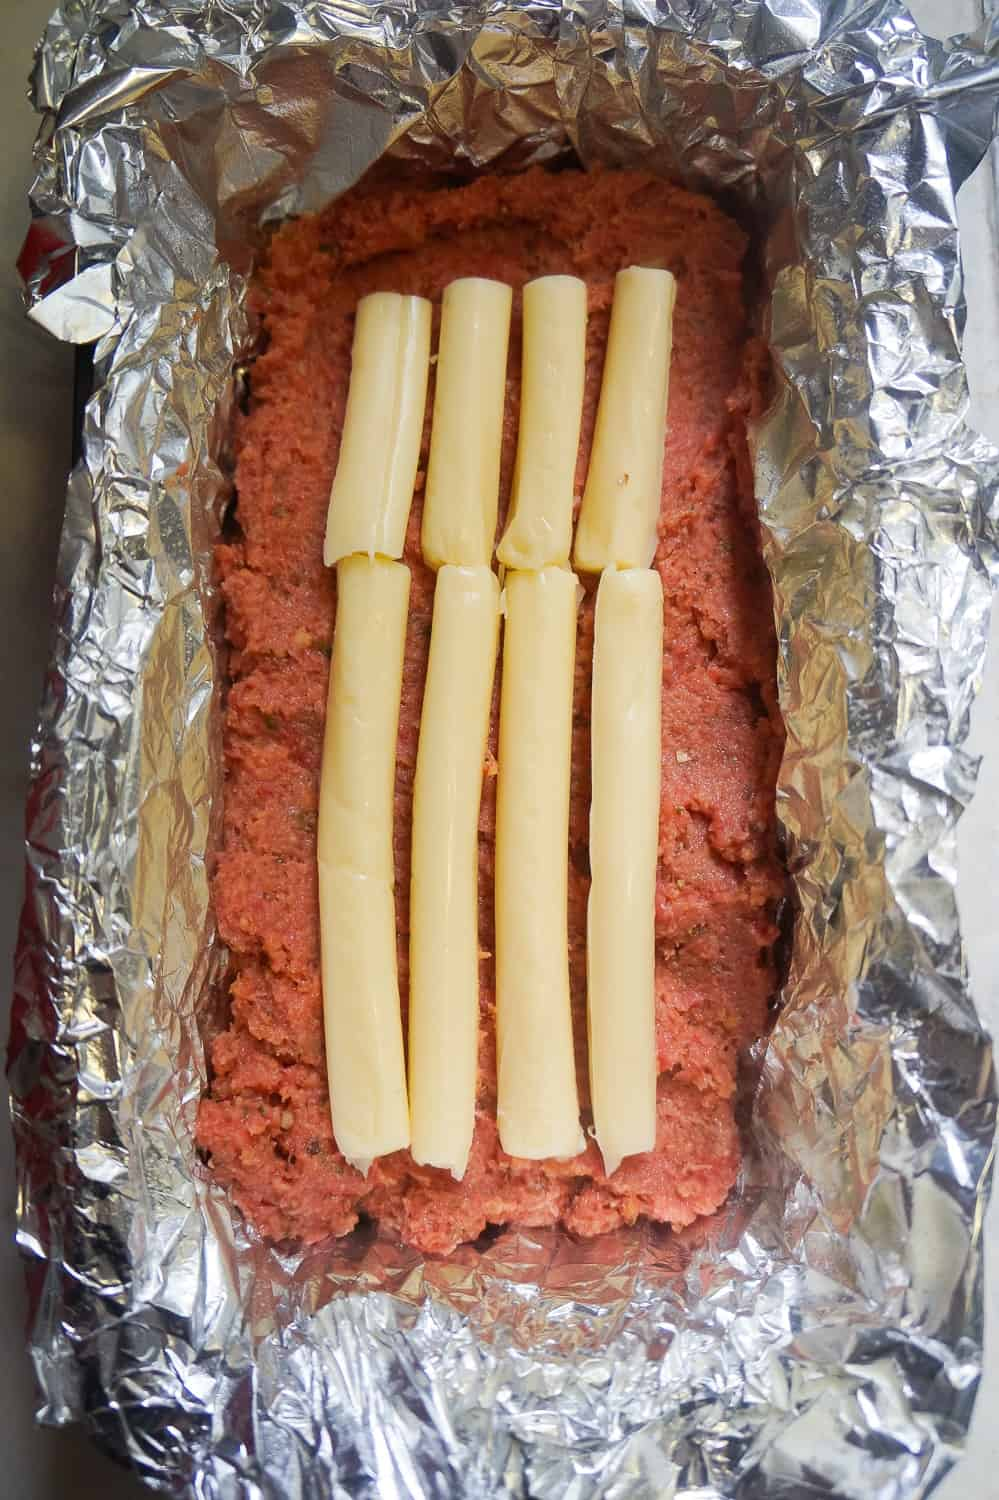 string cheese in the center of uncooked ground chicken meatloaf